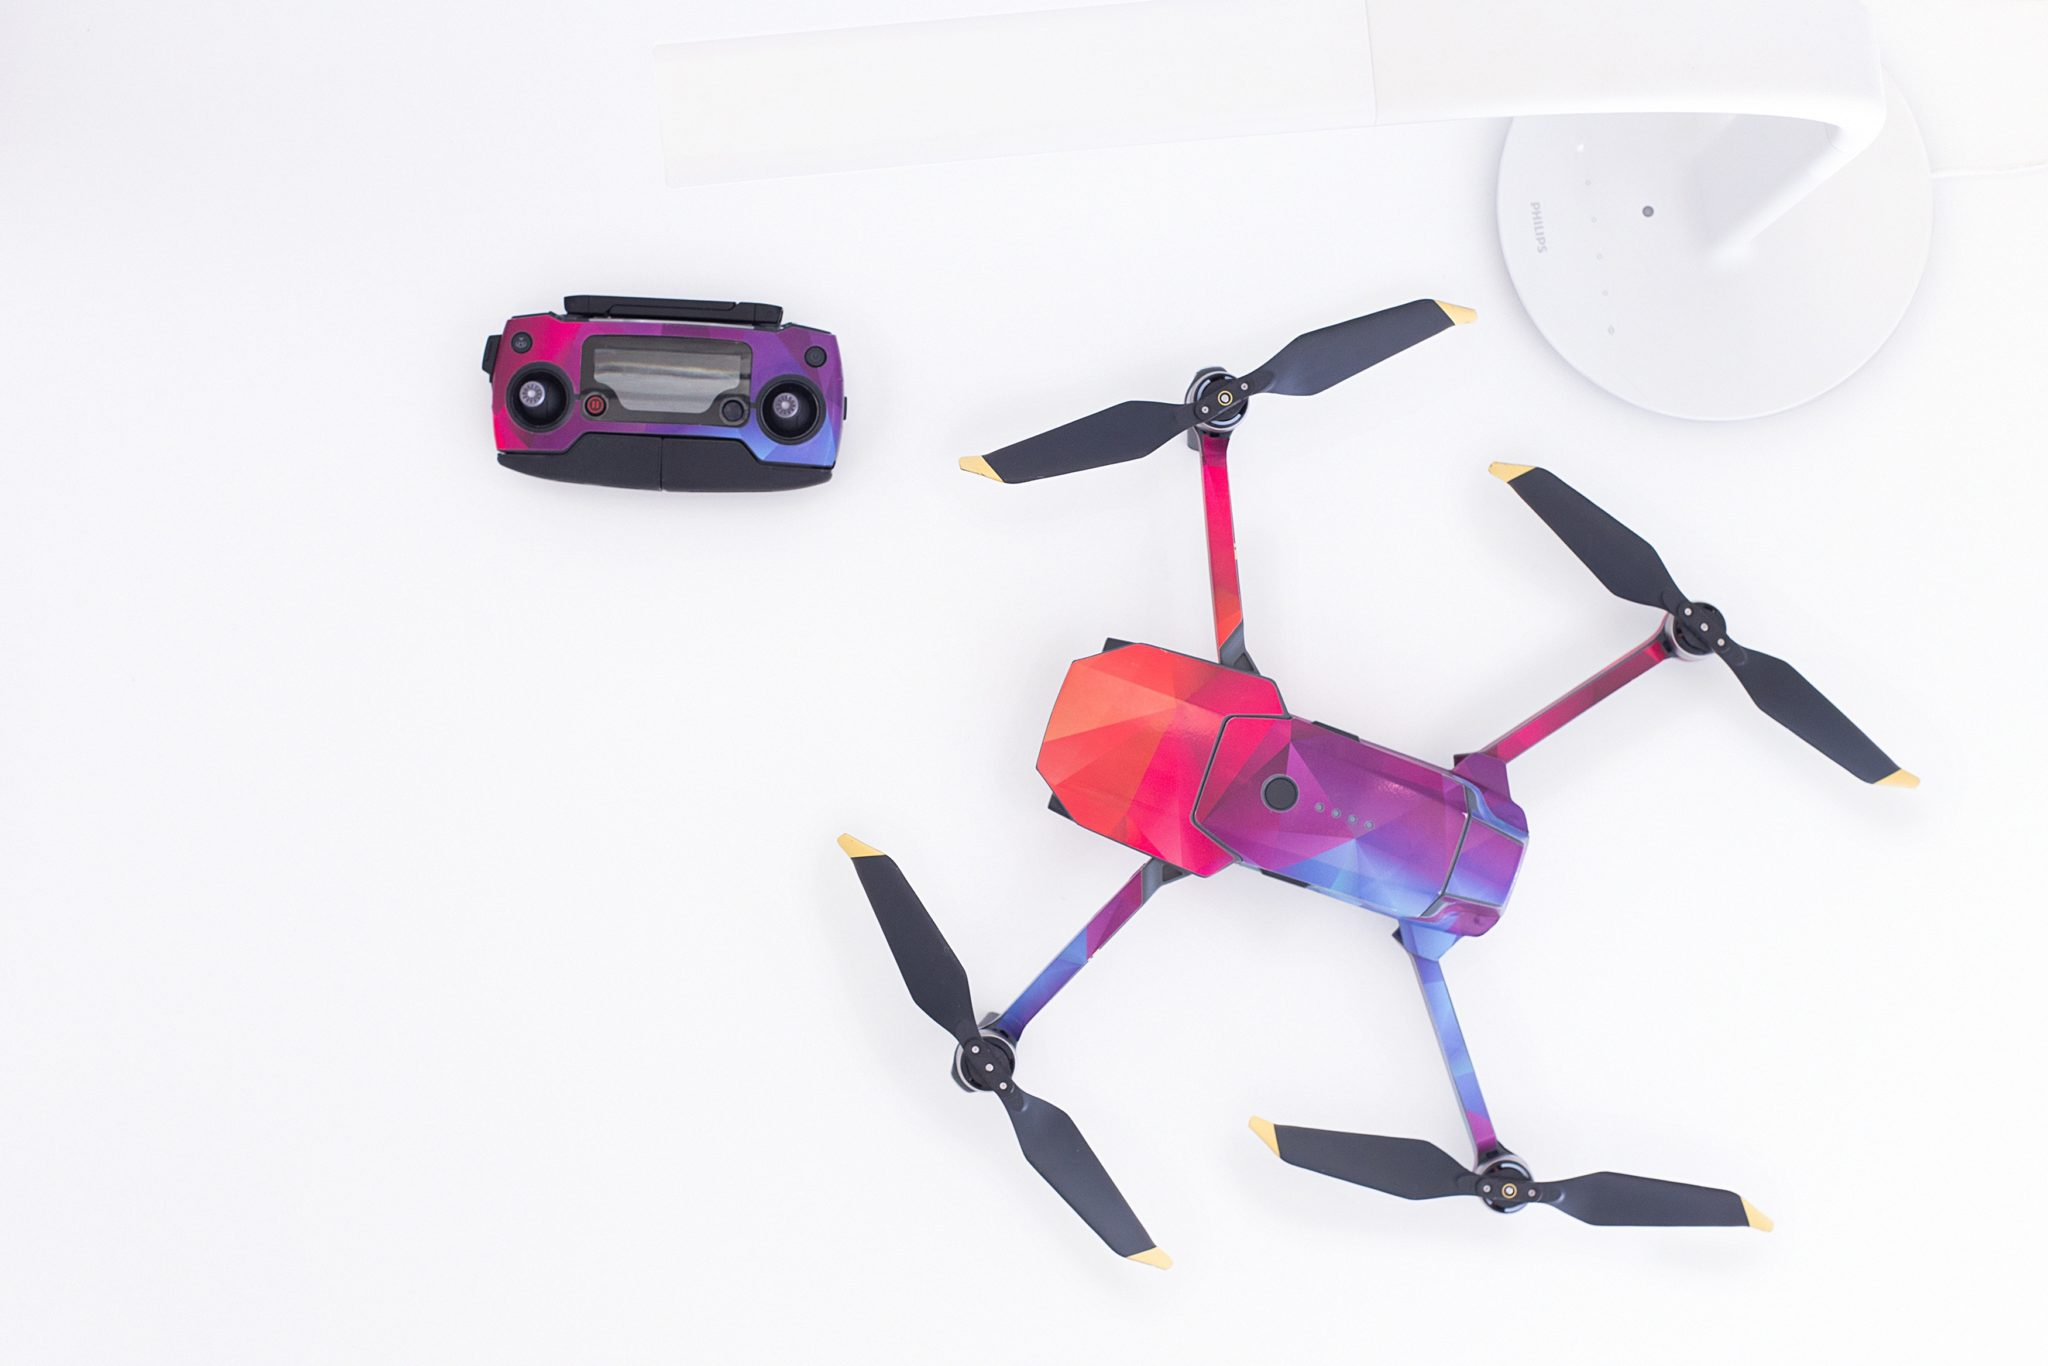 A pink and purple drone